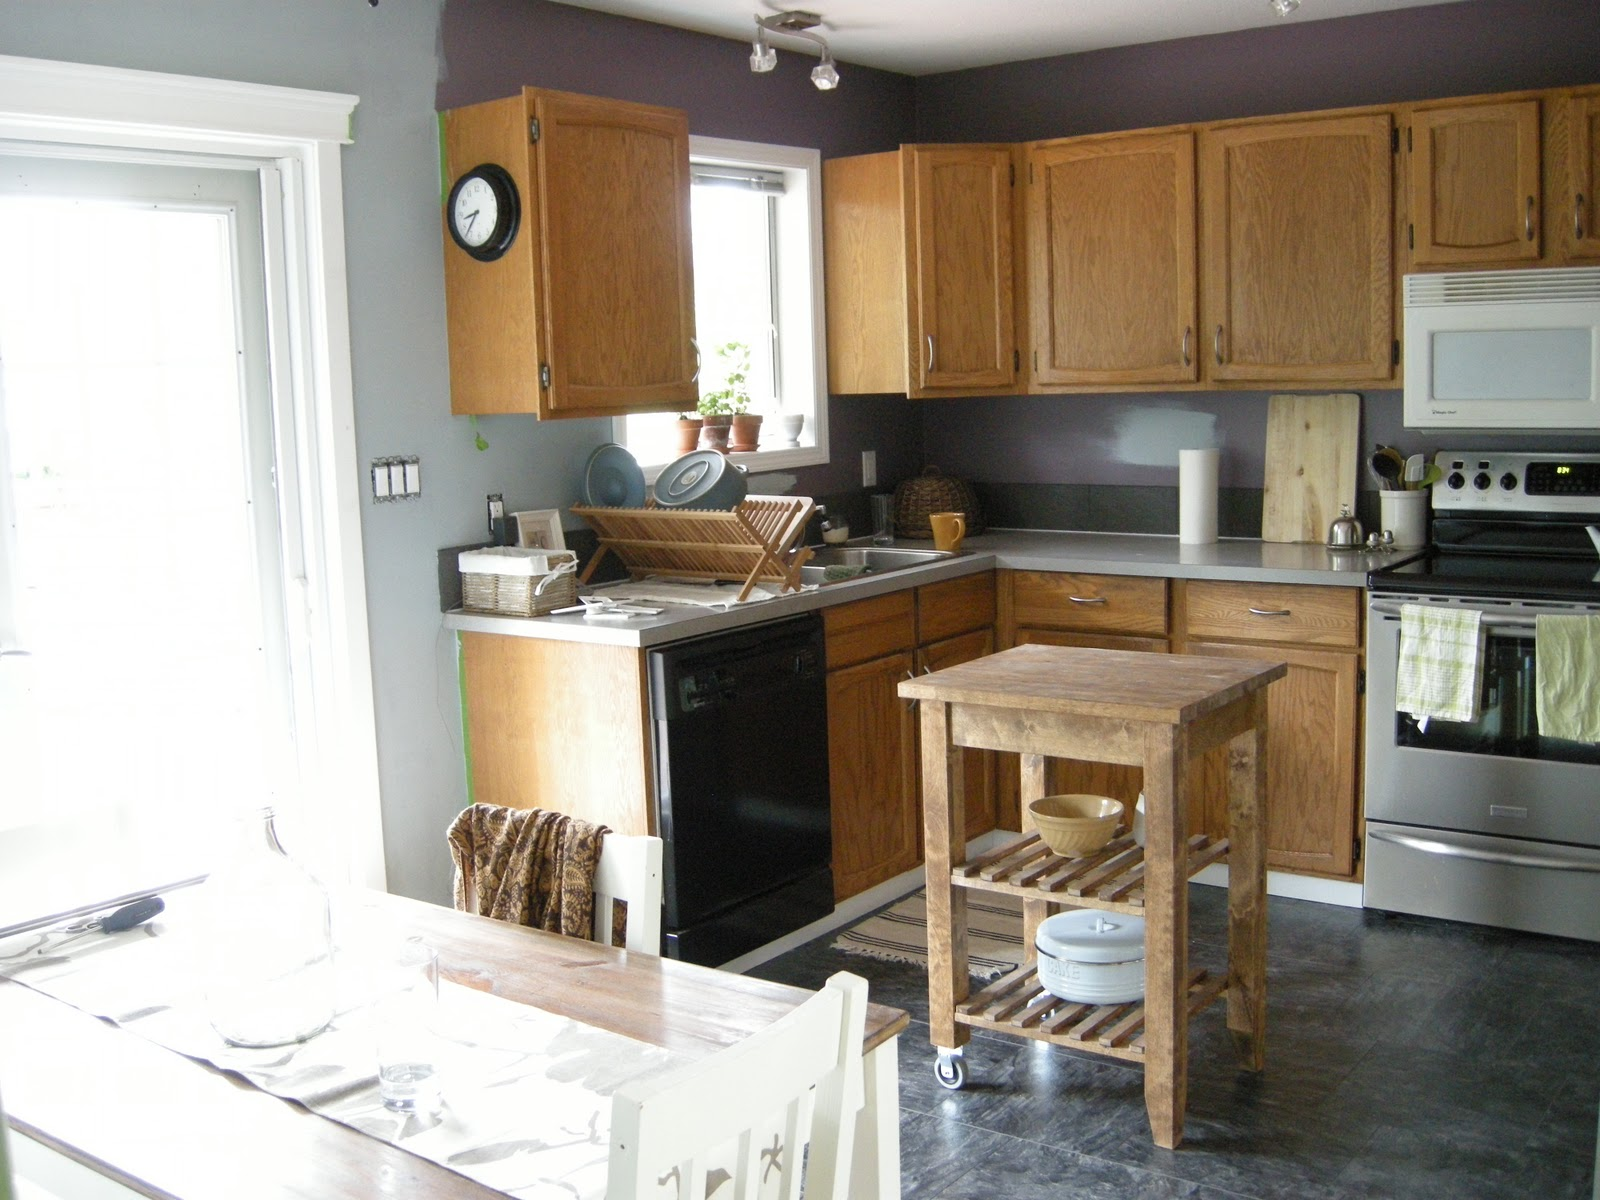 Gray Kitchen Walls kitchen wall colors grey blue pictures to pin on pinterest - pinsdaddy